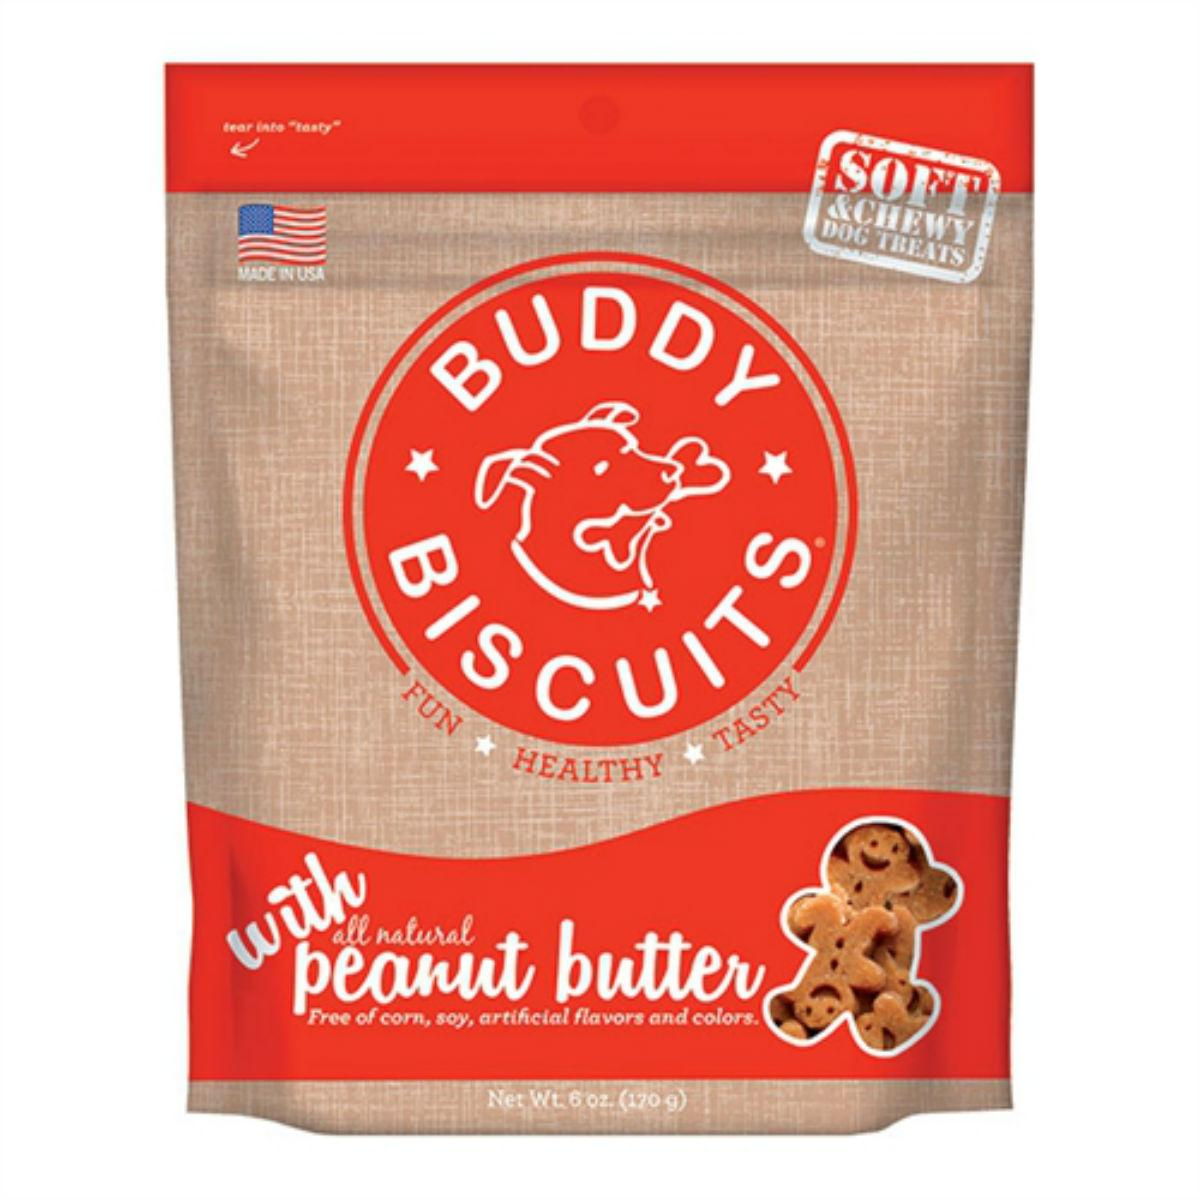 Buddy Biscuits Grain-Free Soft & Chewy Dog Treat - Homestyle Peanut Butter